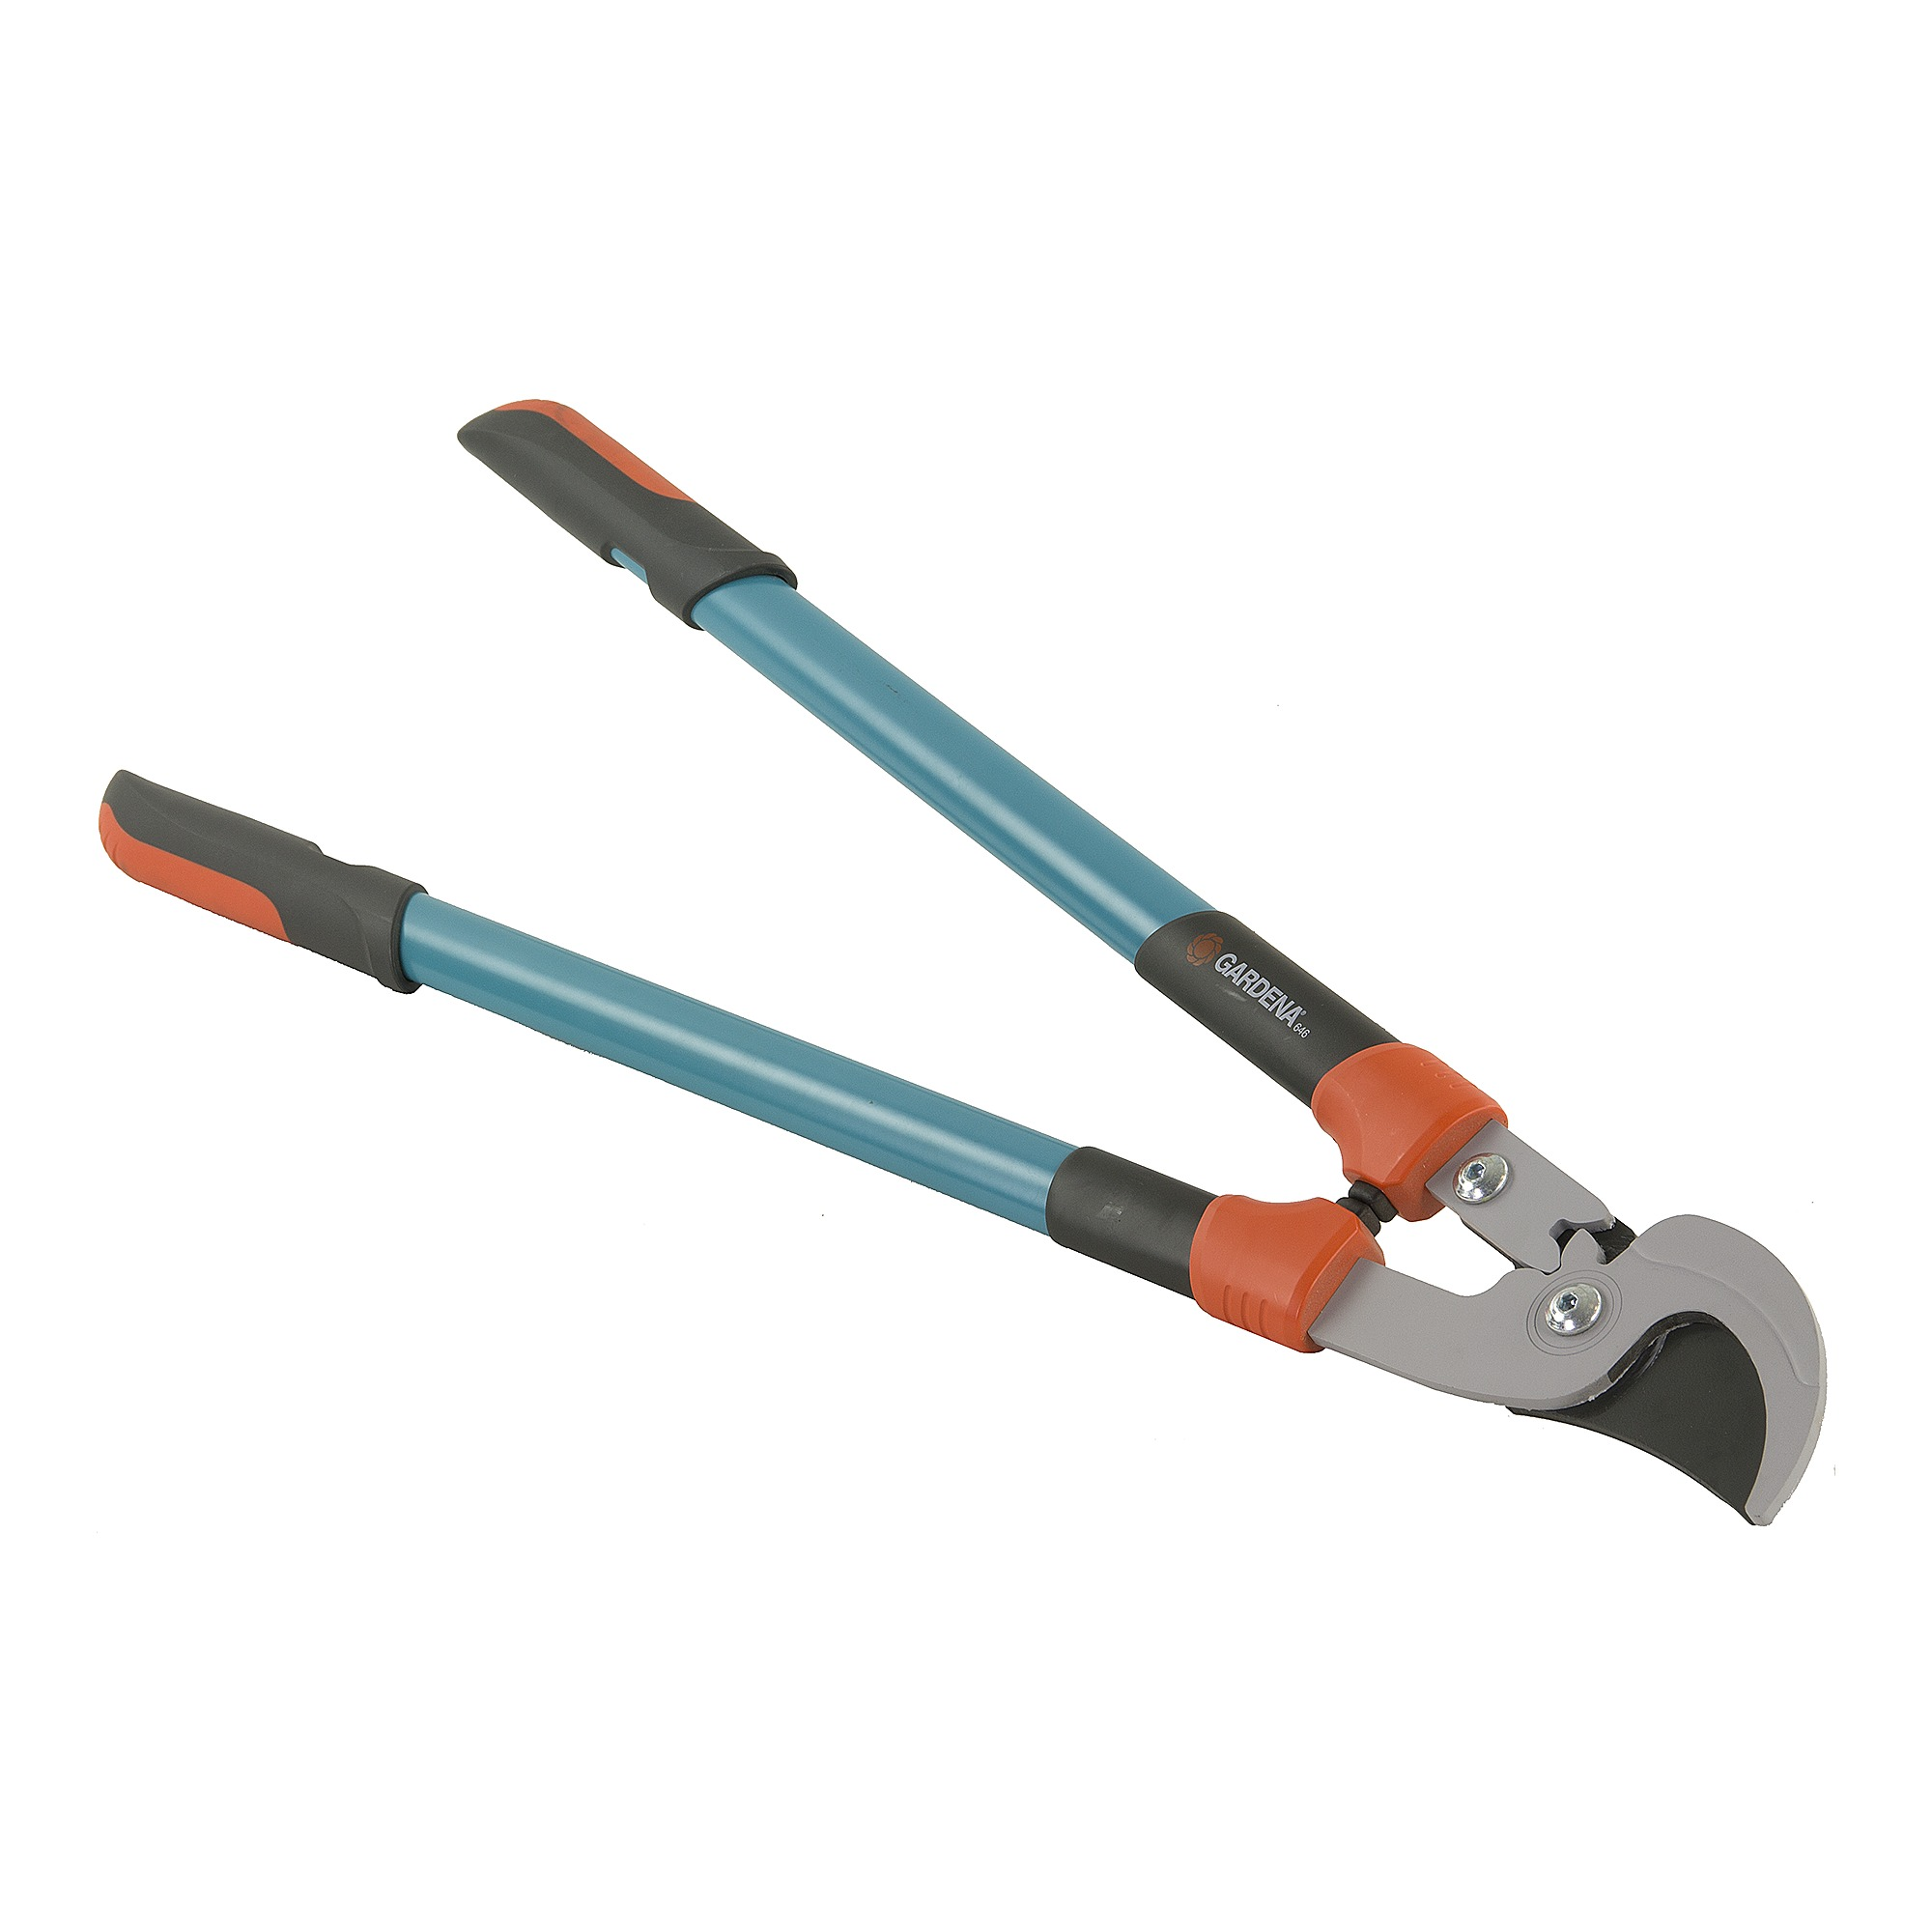 Gardena coupe branches cr maill re enclume 780bl - Coupe branche a cremaillere ...